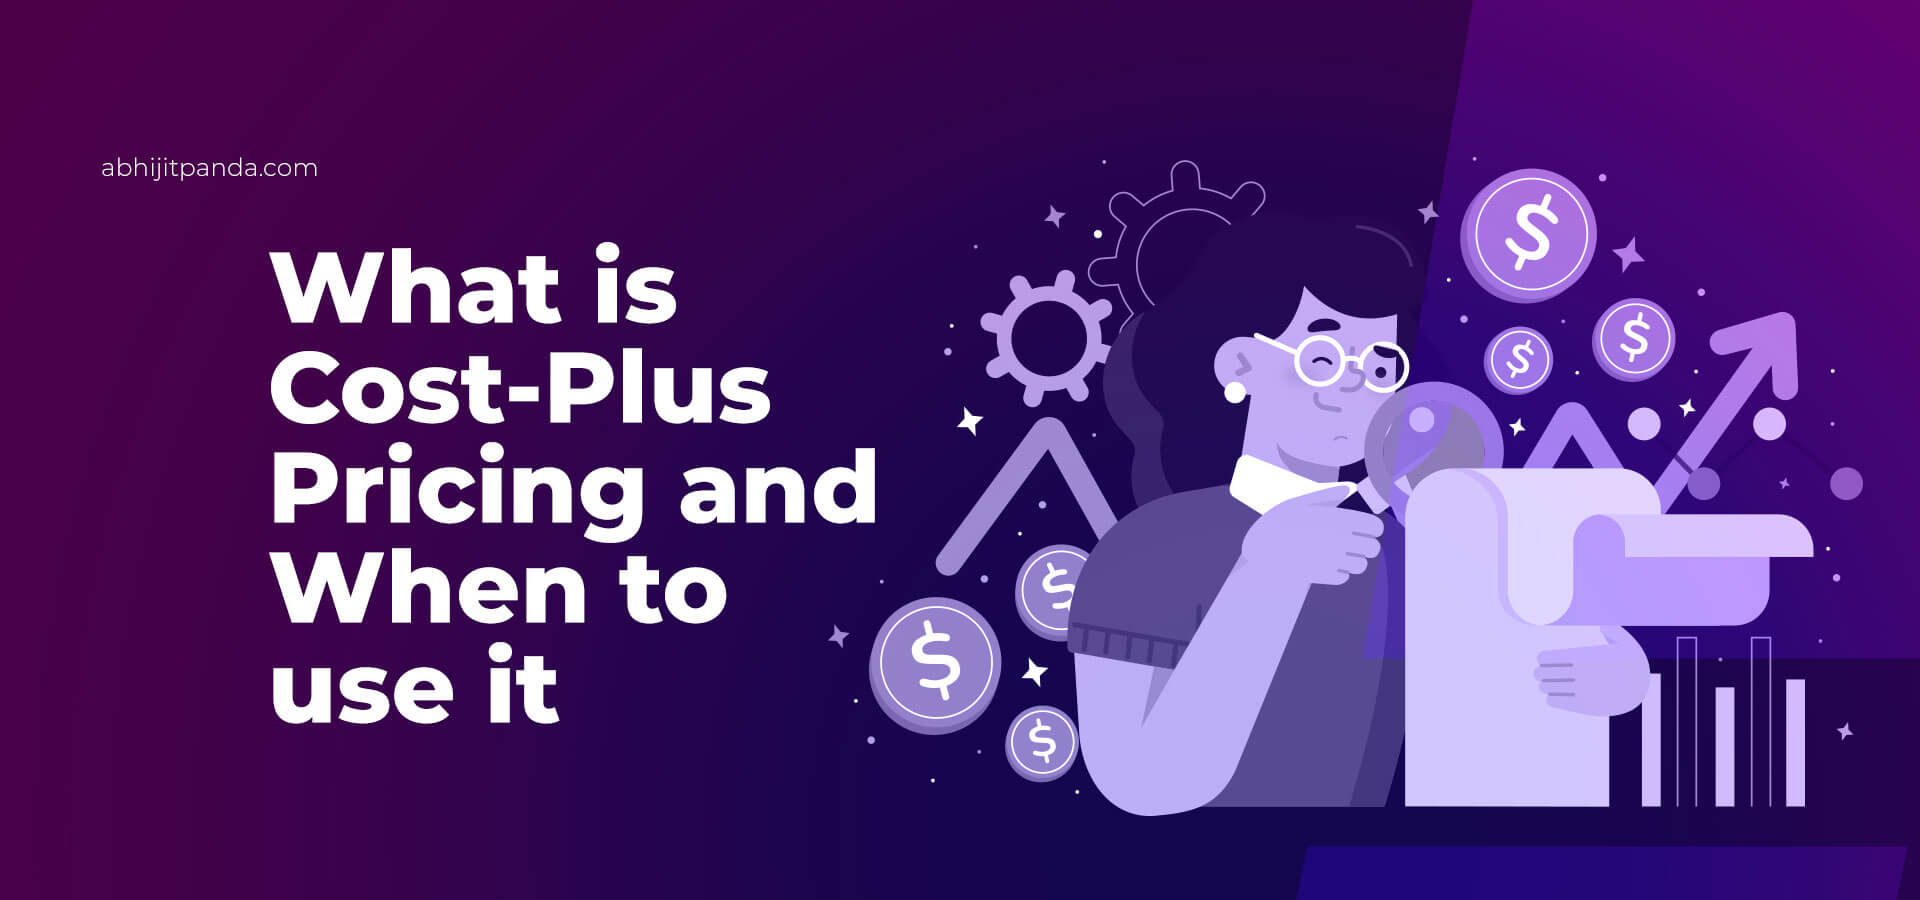 What is Cost Plus Pricing and When to use it